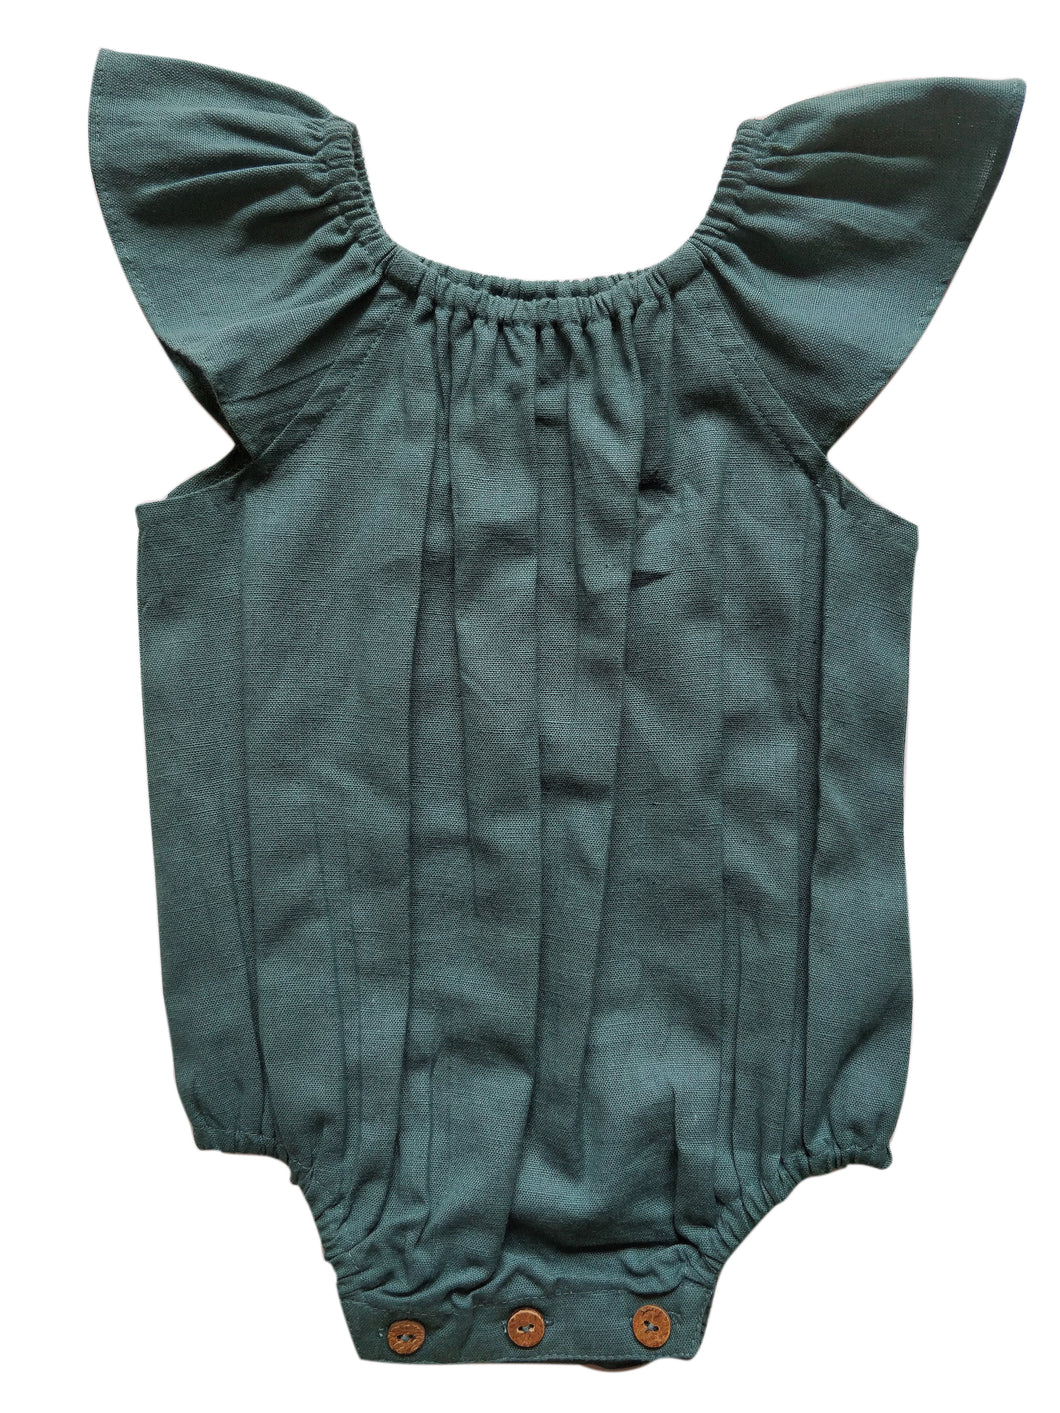 Teal Flutter Sleeves Infant Romper - Kids Wholesale Boutique Clothing, Dress - Girls Dresses, Yo Baby Wholesale - Yo Baby